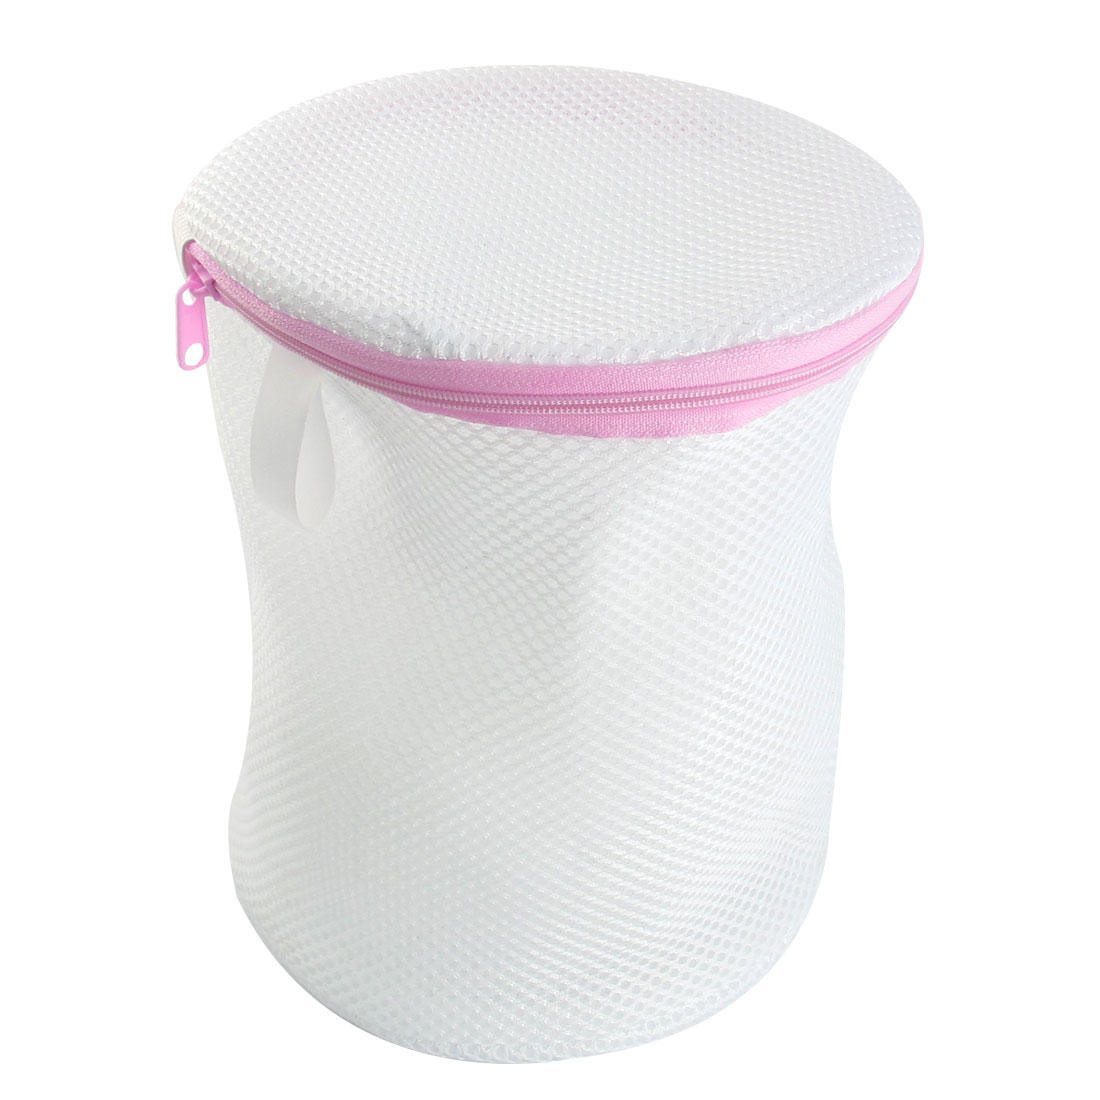 White Cylinder Zipper Closure Nylon Mesh Underwear Bra Washing Laundry Bag